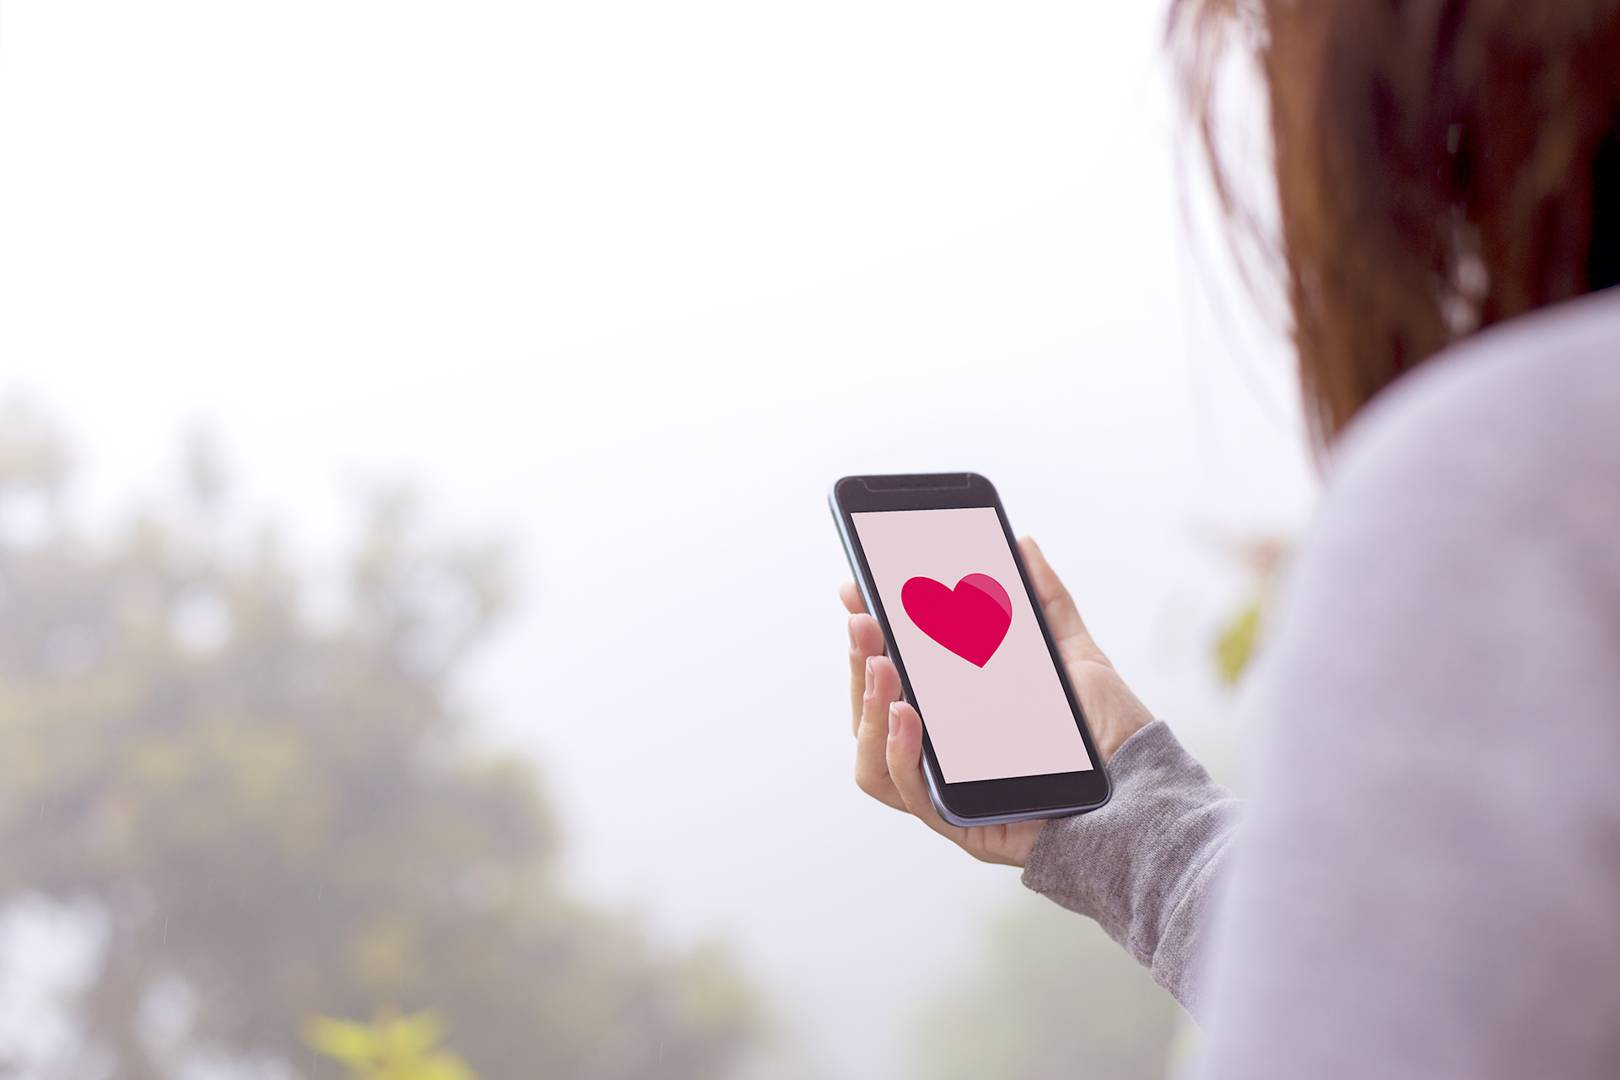 Best hookup apps for under 18